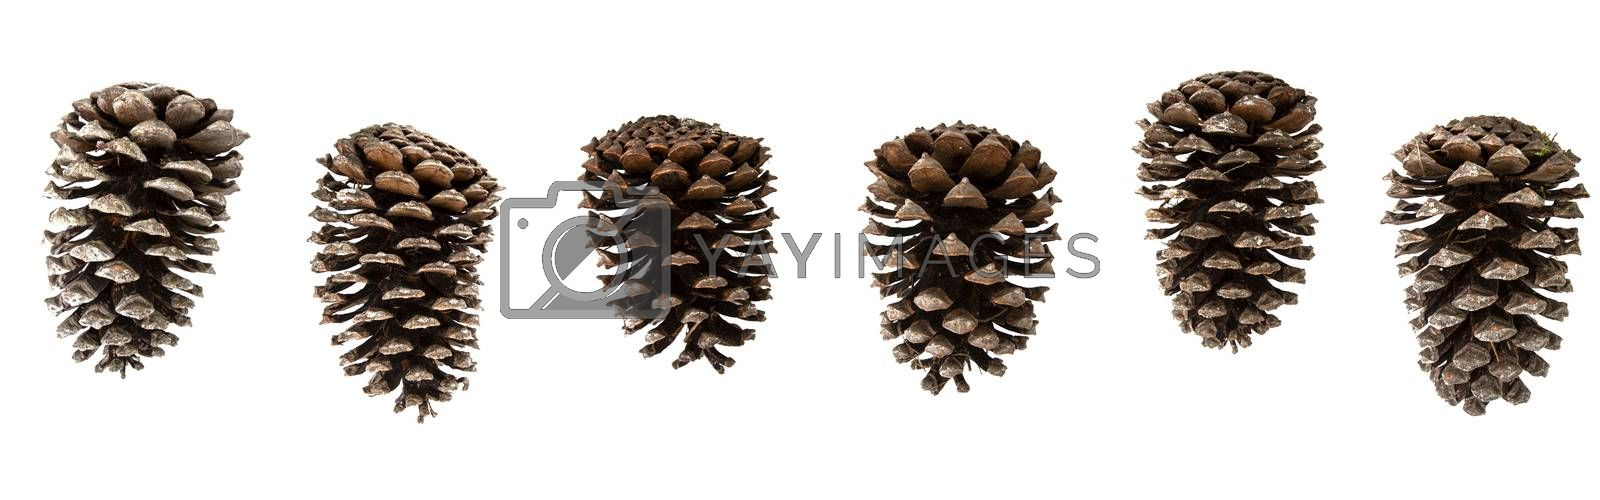 different pine cones on white background